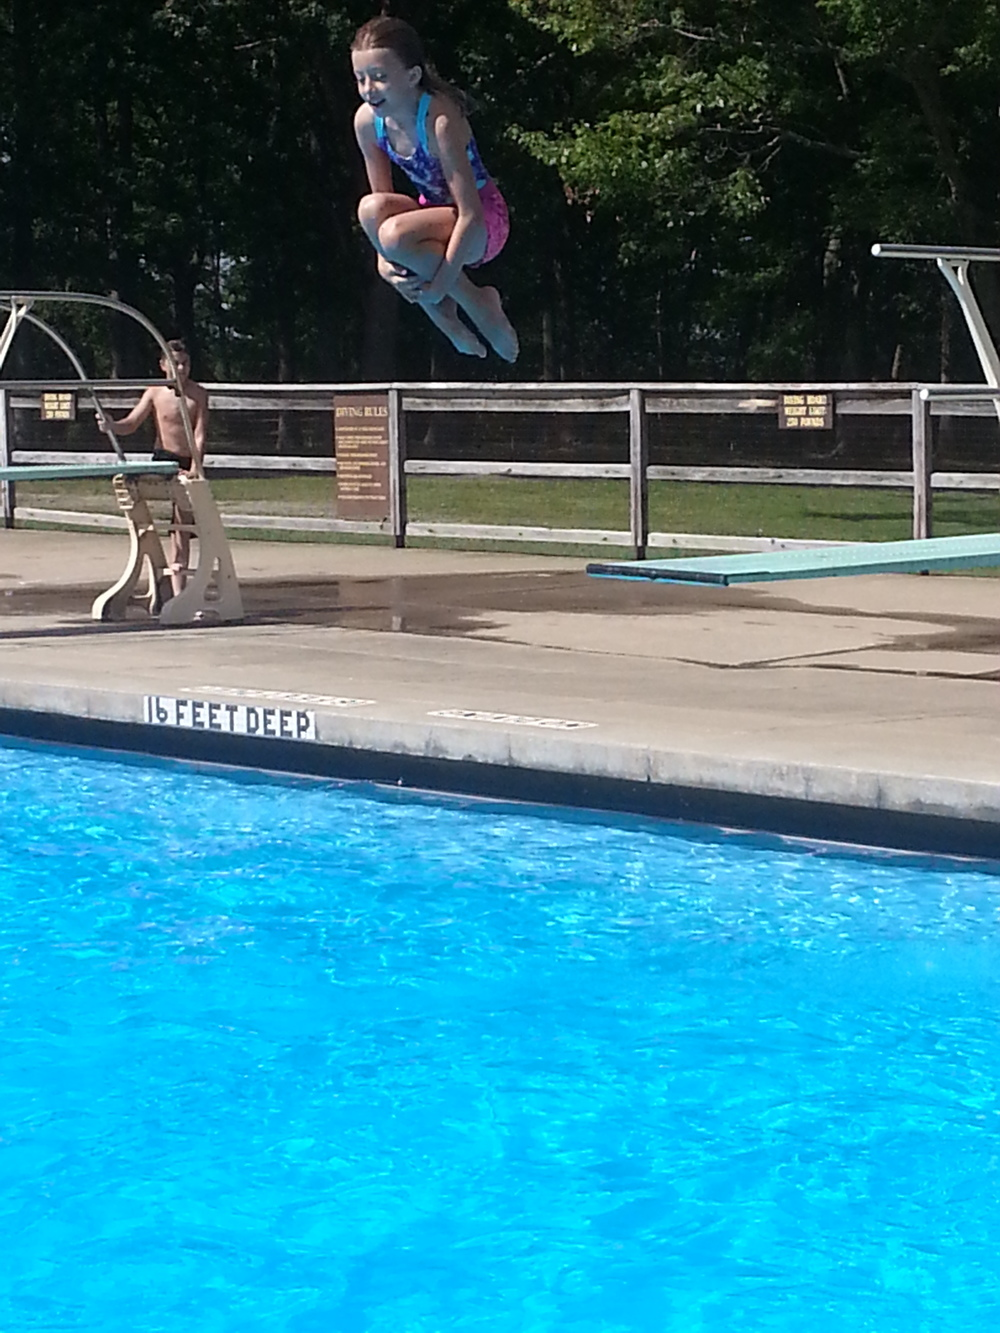 Epic cannonball!